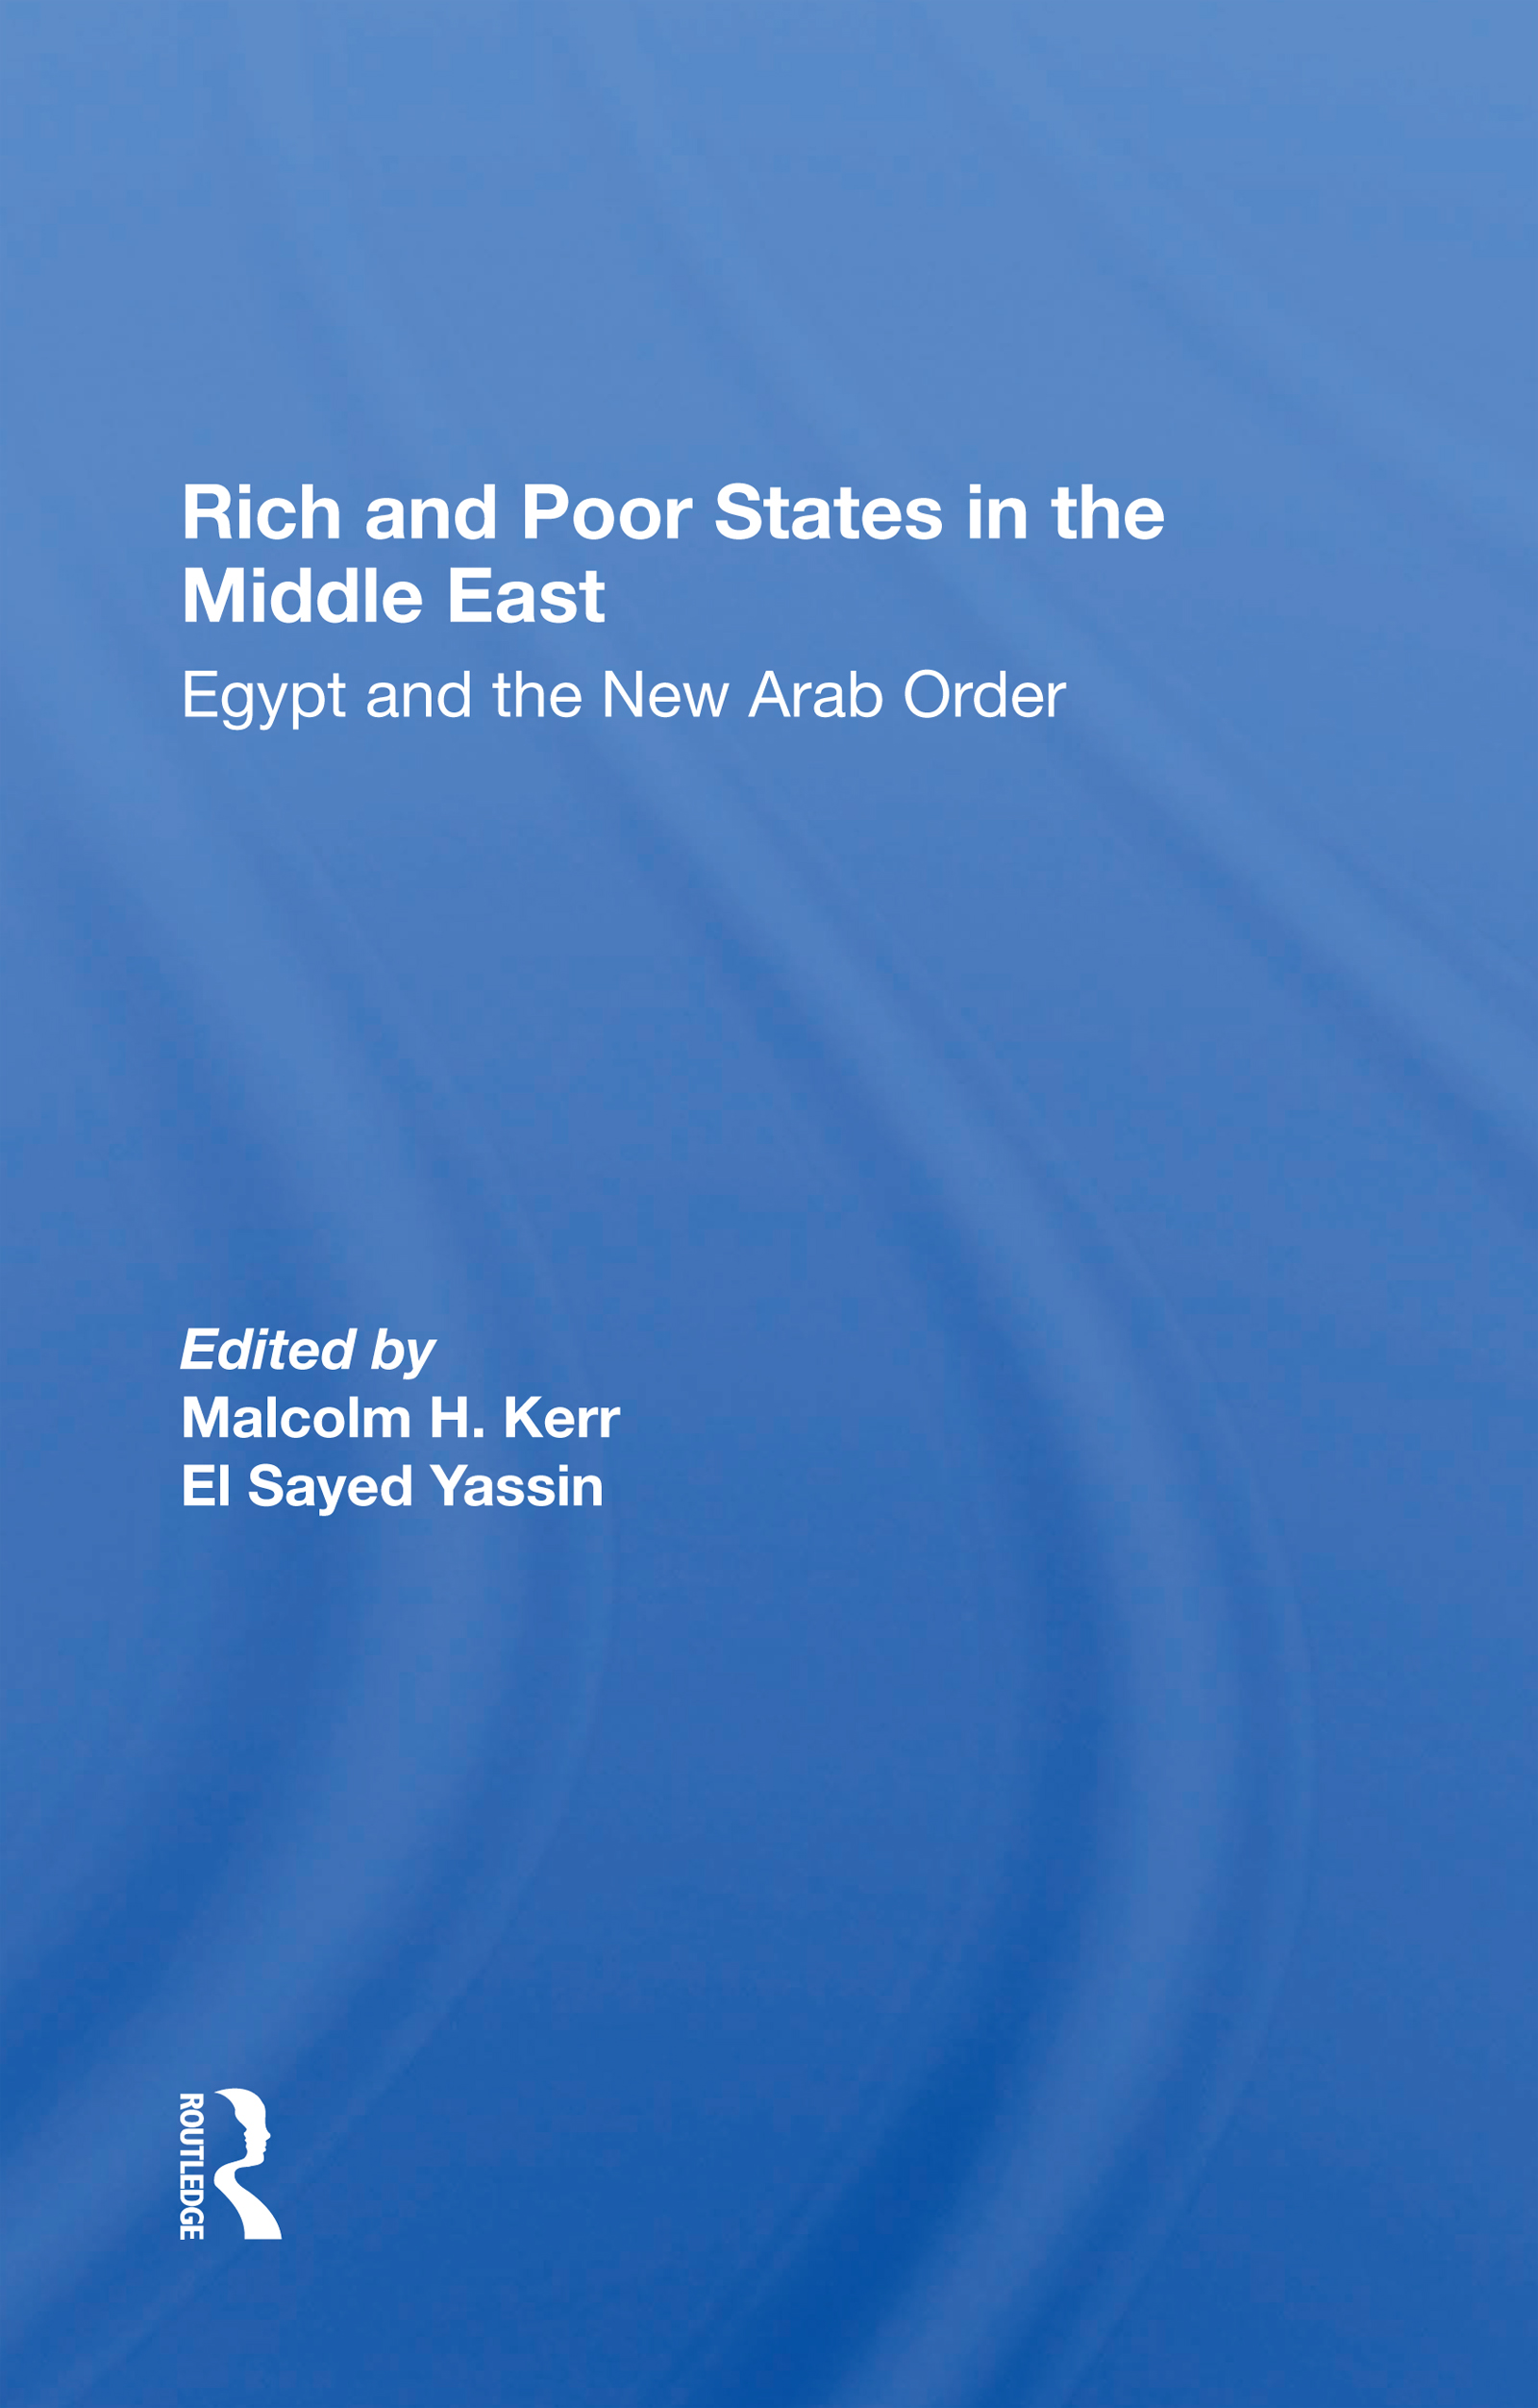 Rich and Poor States in the Middle East